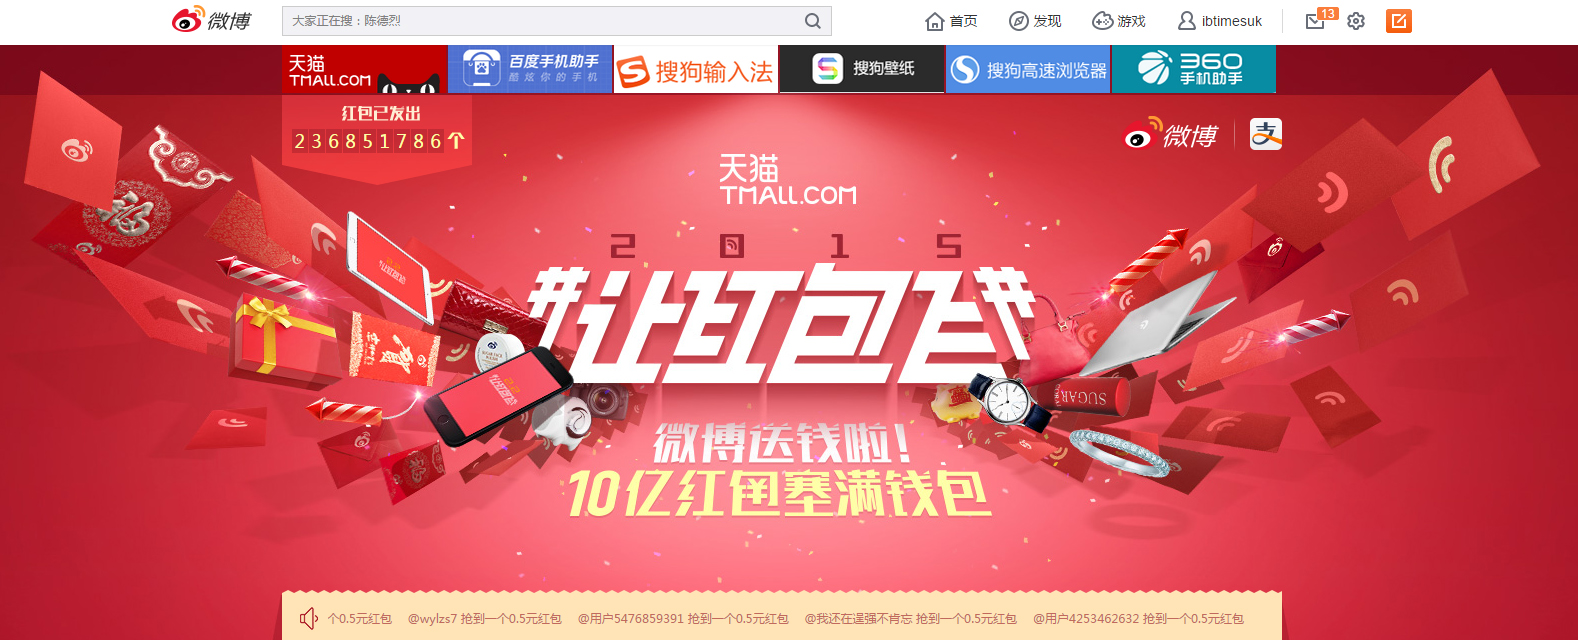 Weibo's electronic hong bao promotion, where users can win red packets of money or vouchers and discounts